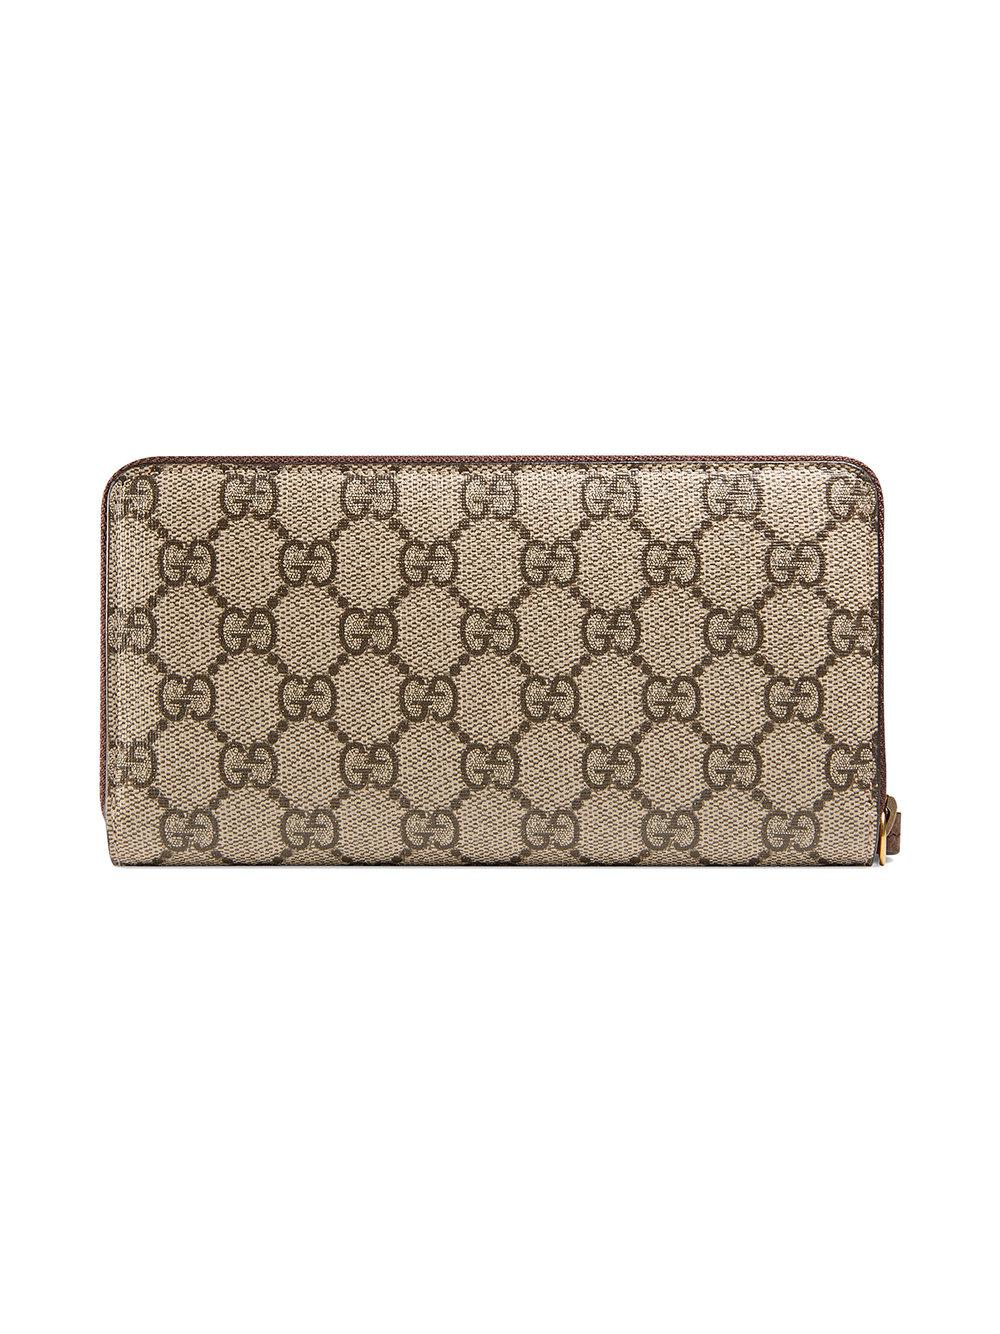 fbffb3cfa5c5 Gucci Neo Vintage Gg Supreme Zip Around Wallet - Lyst